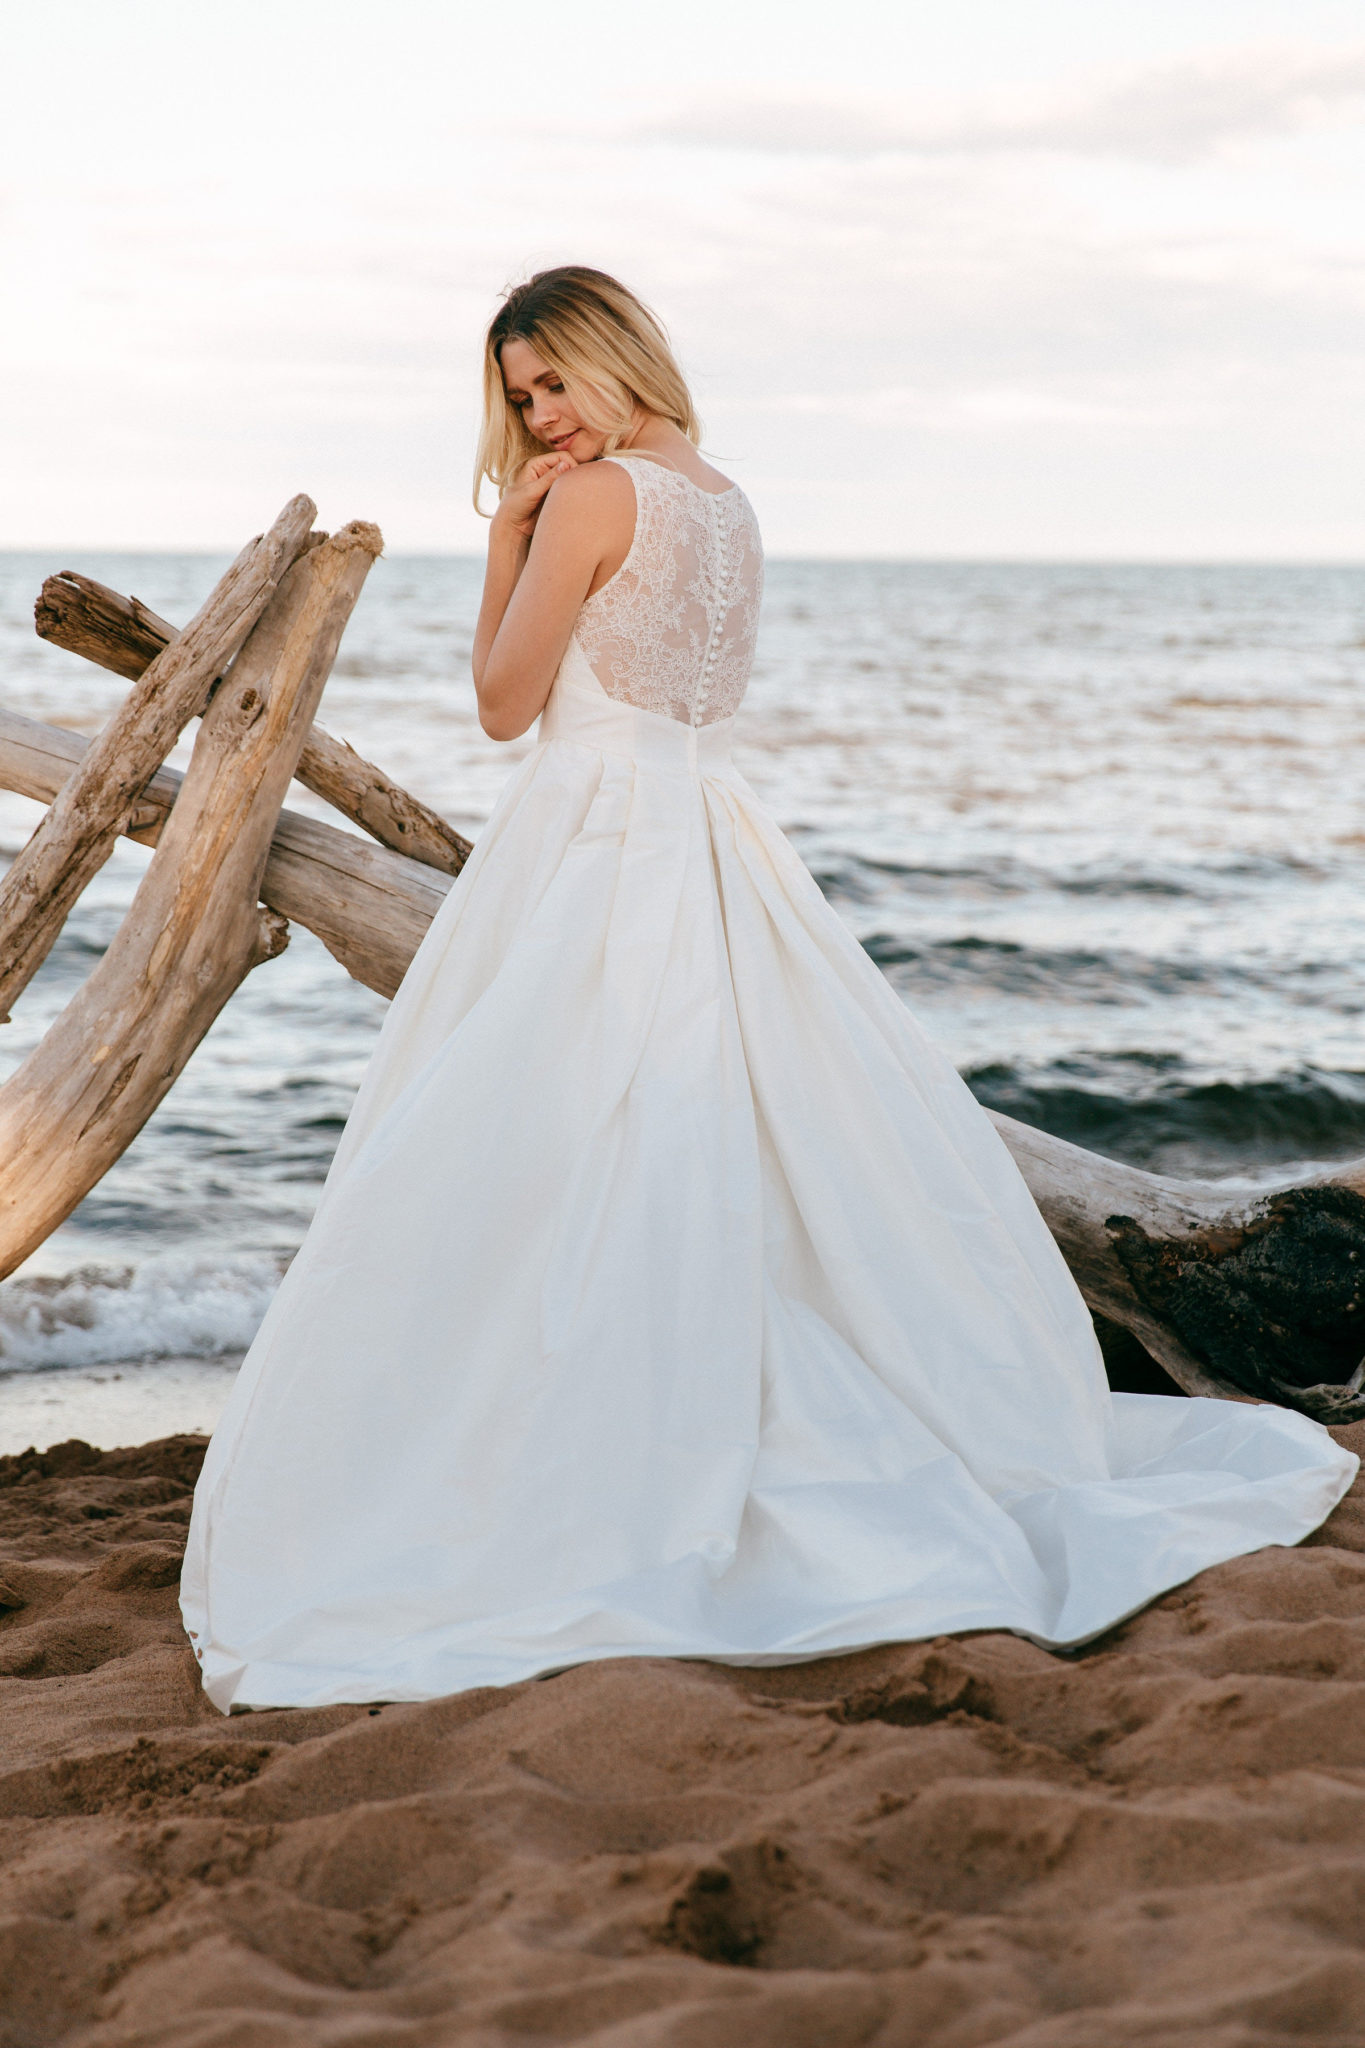 Pictured : Cherish Gown by Lea Ann Belter, Astrid & Mercedes Collection